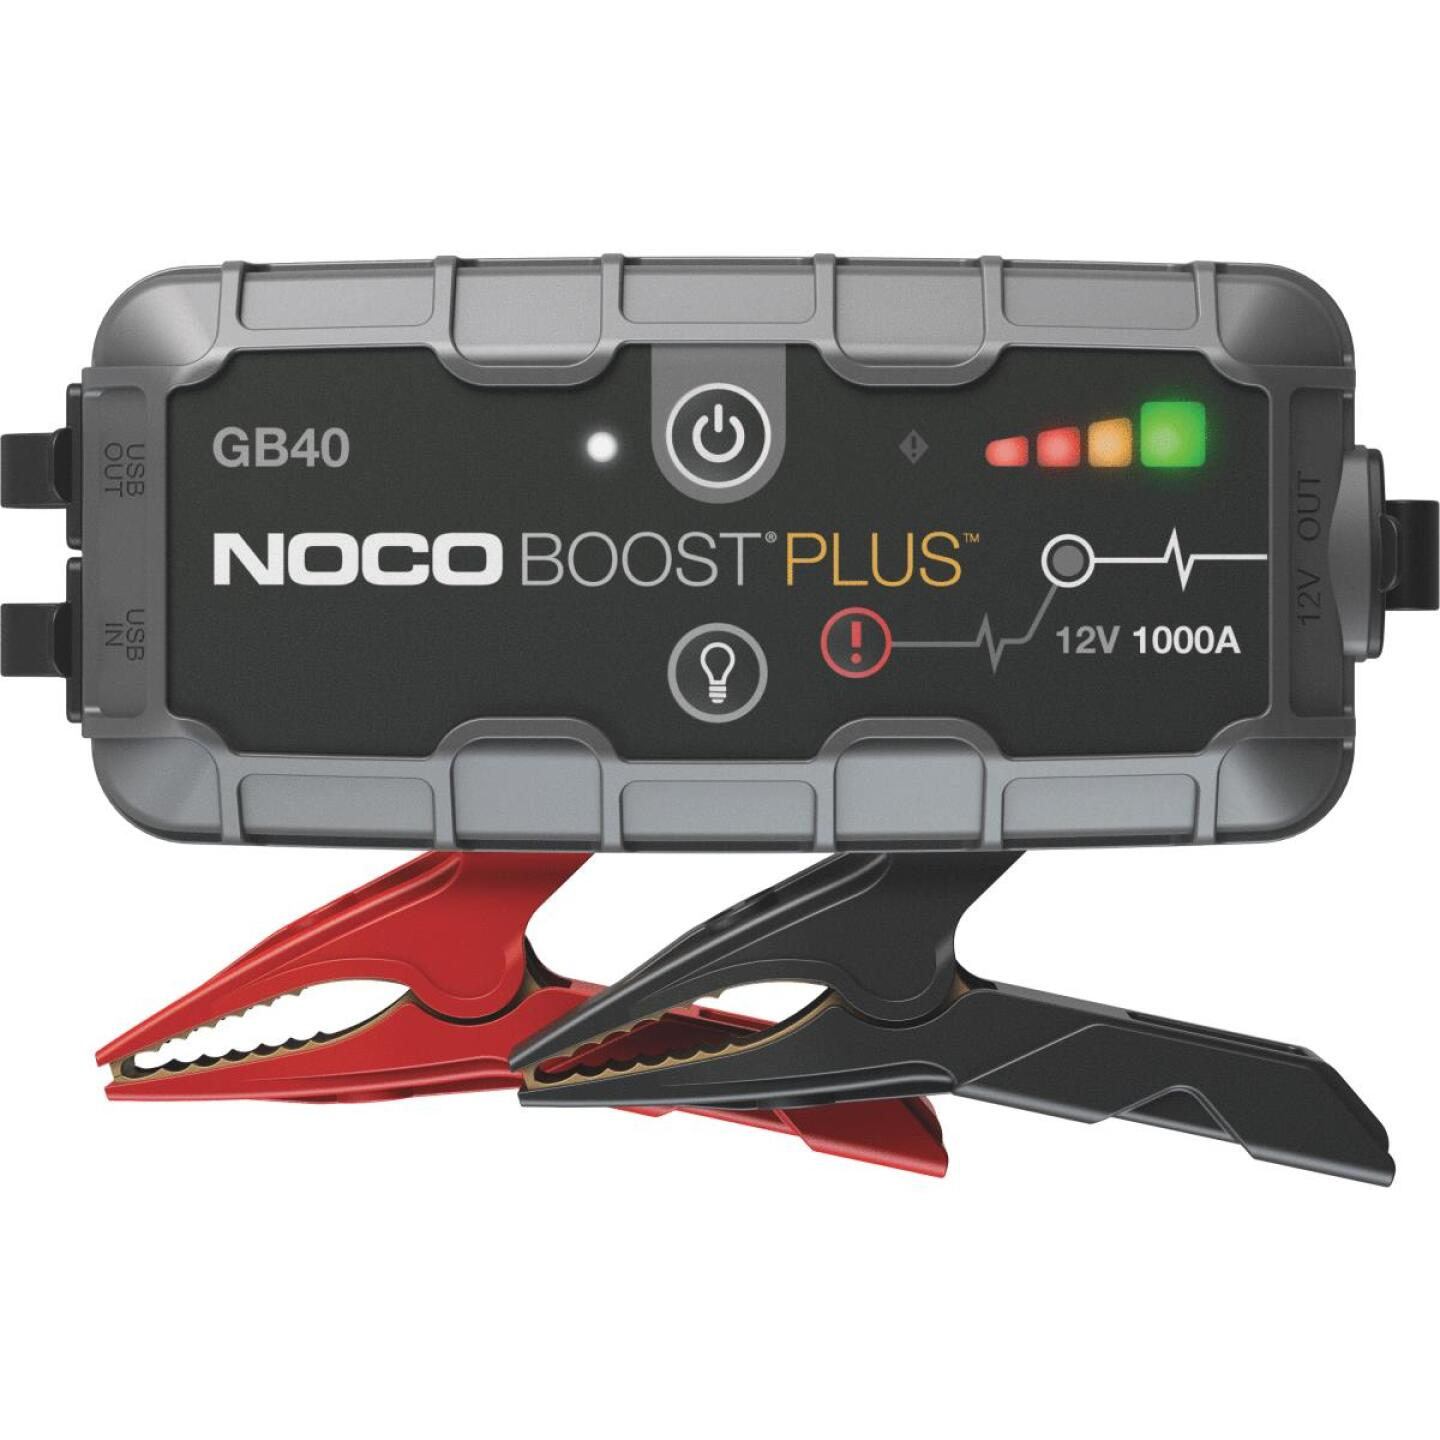 NOCO Boost Plus 1000 Amp 12-Volt UltraSafe Lithium Jump Start System Image 1